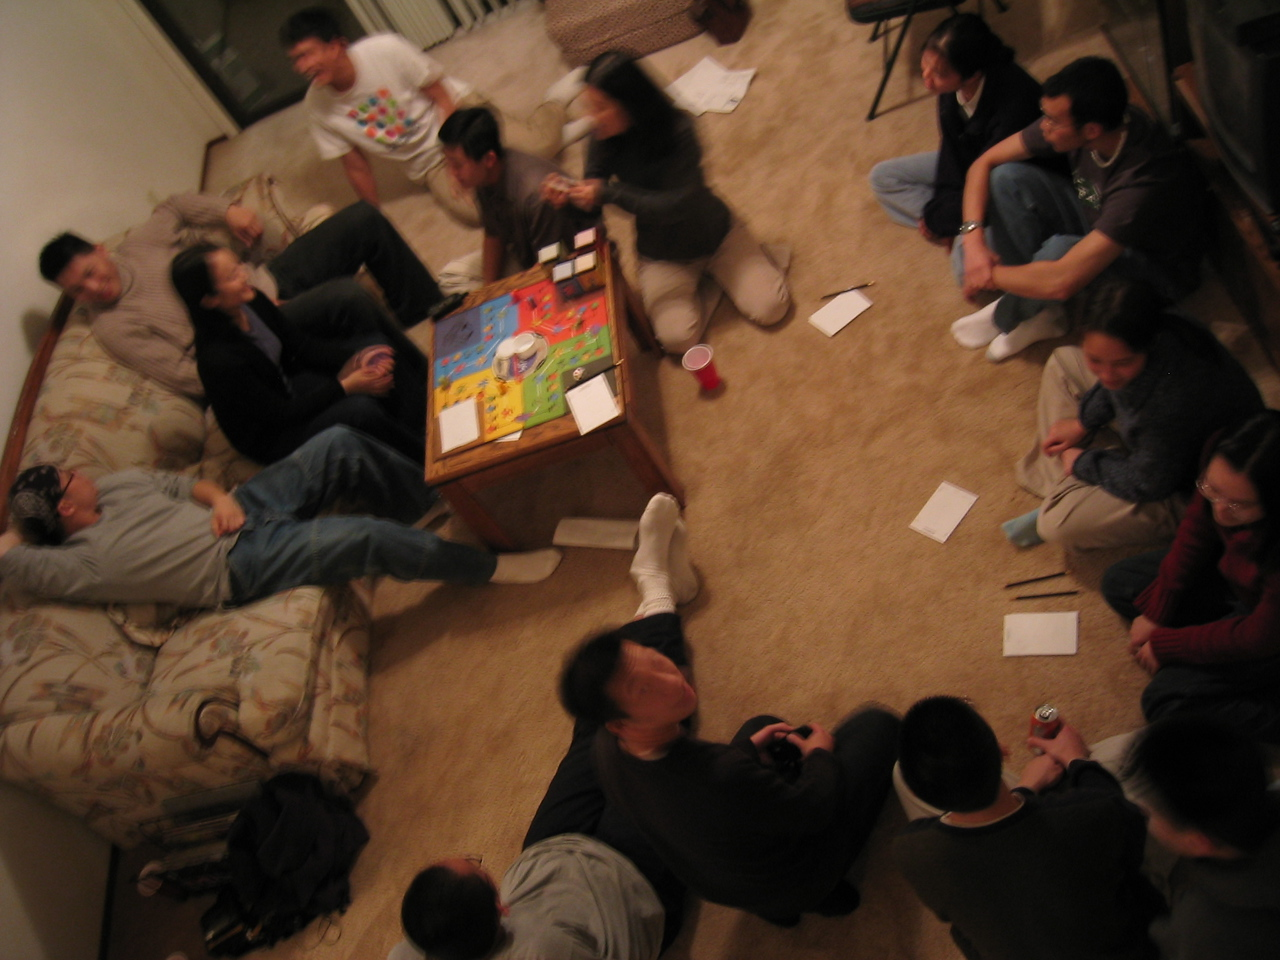 Cranium from above and no flash